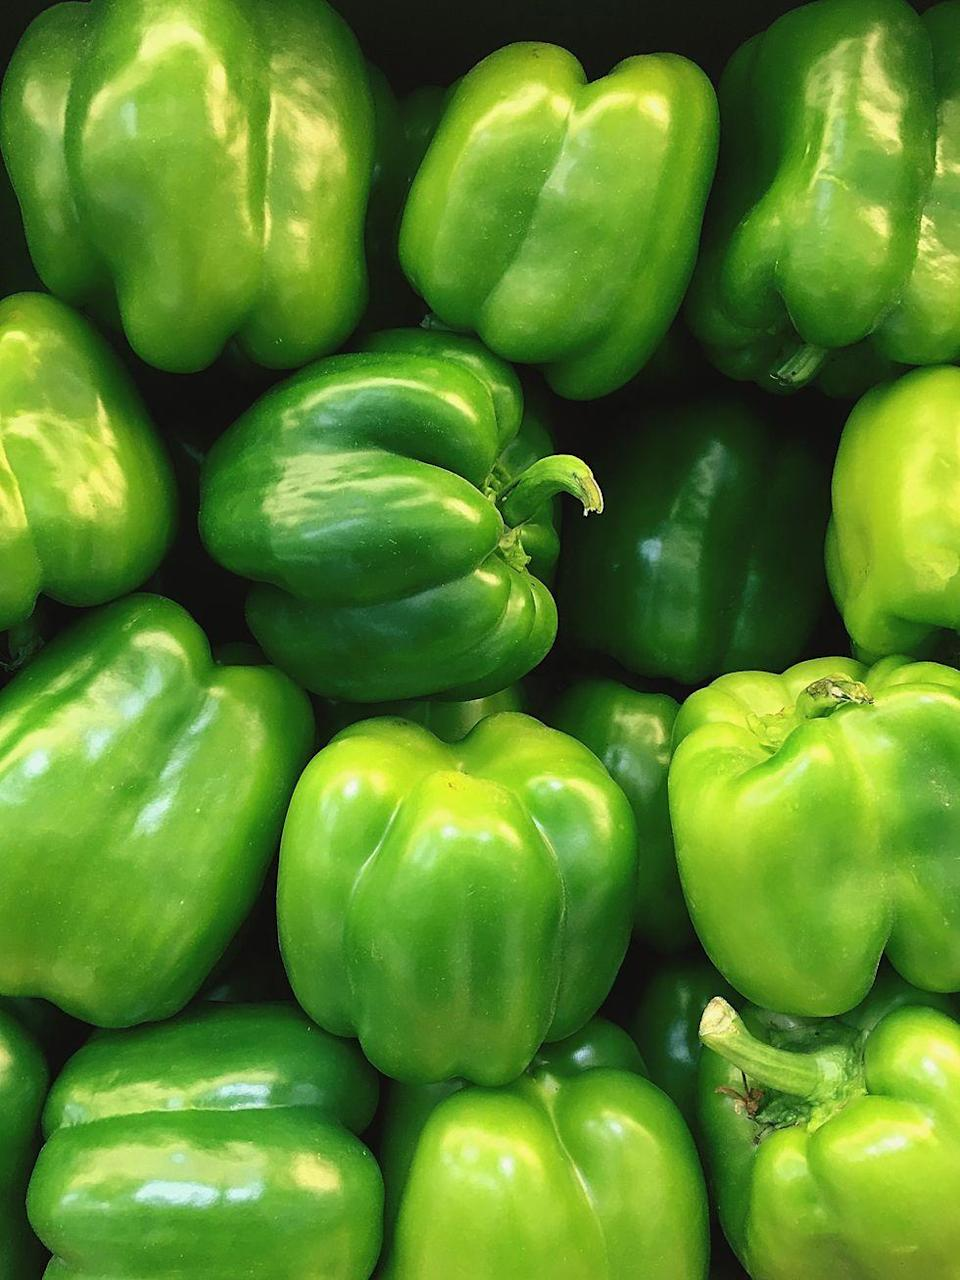 <p>Nothing will happen to the integrity of the pepper if you freeze it, but in order to thaw it properly you have to blanch them first. Otherwise, it's not going to be the same afterward. </p>